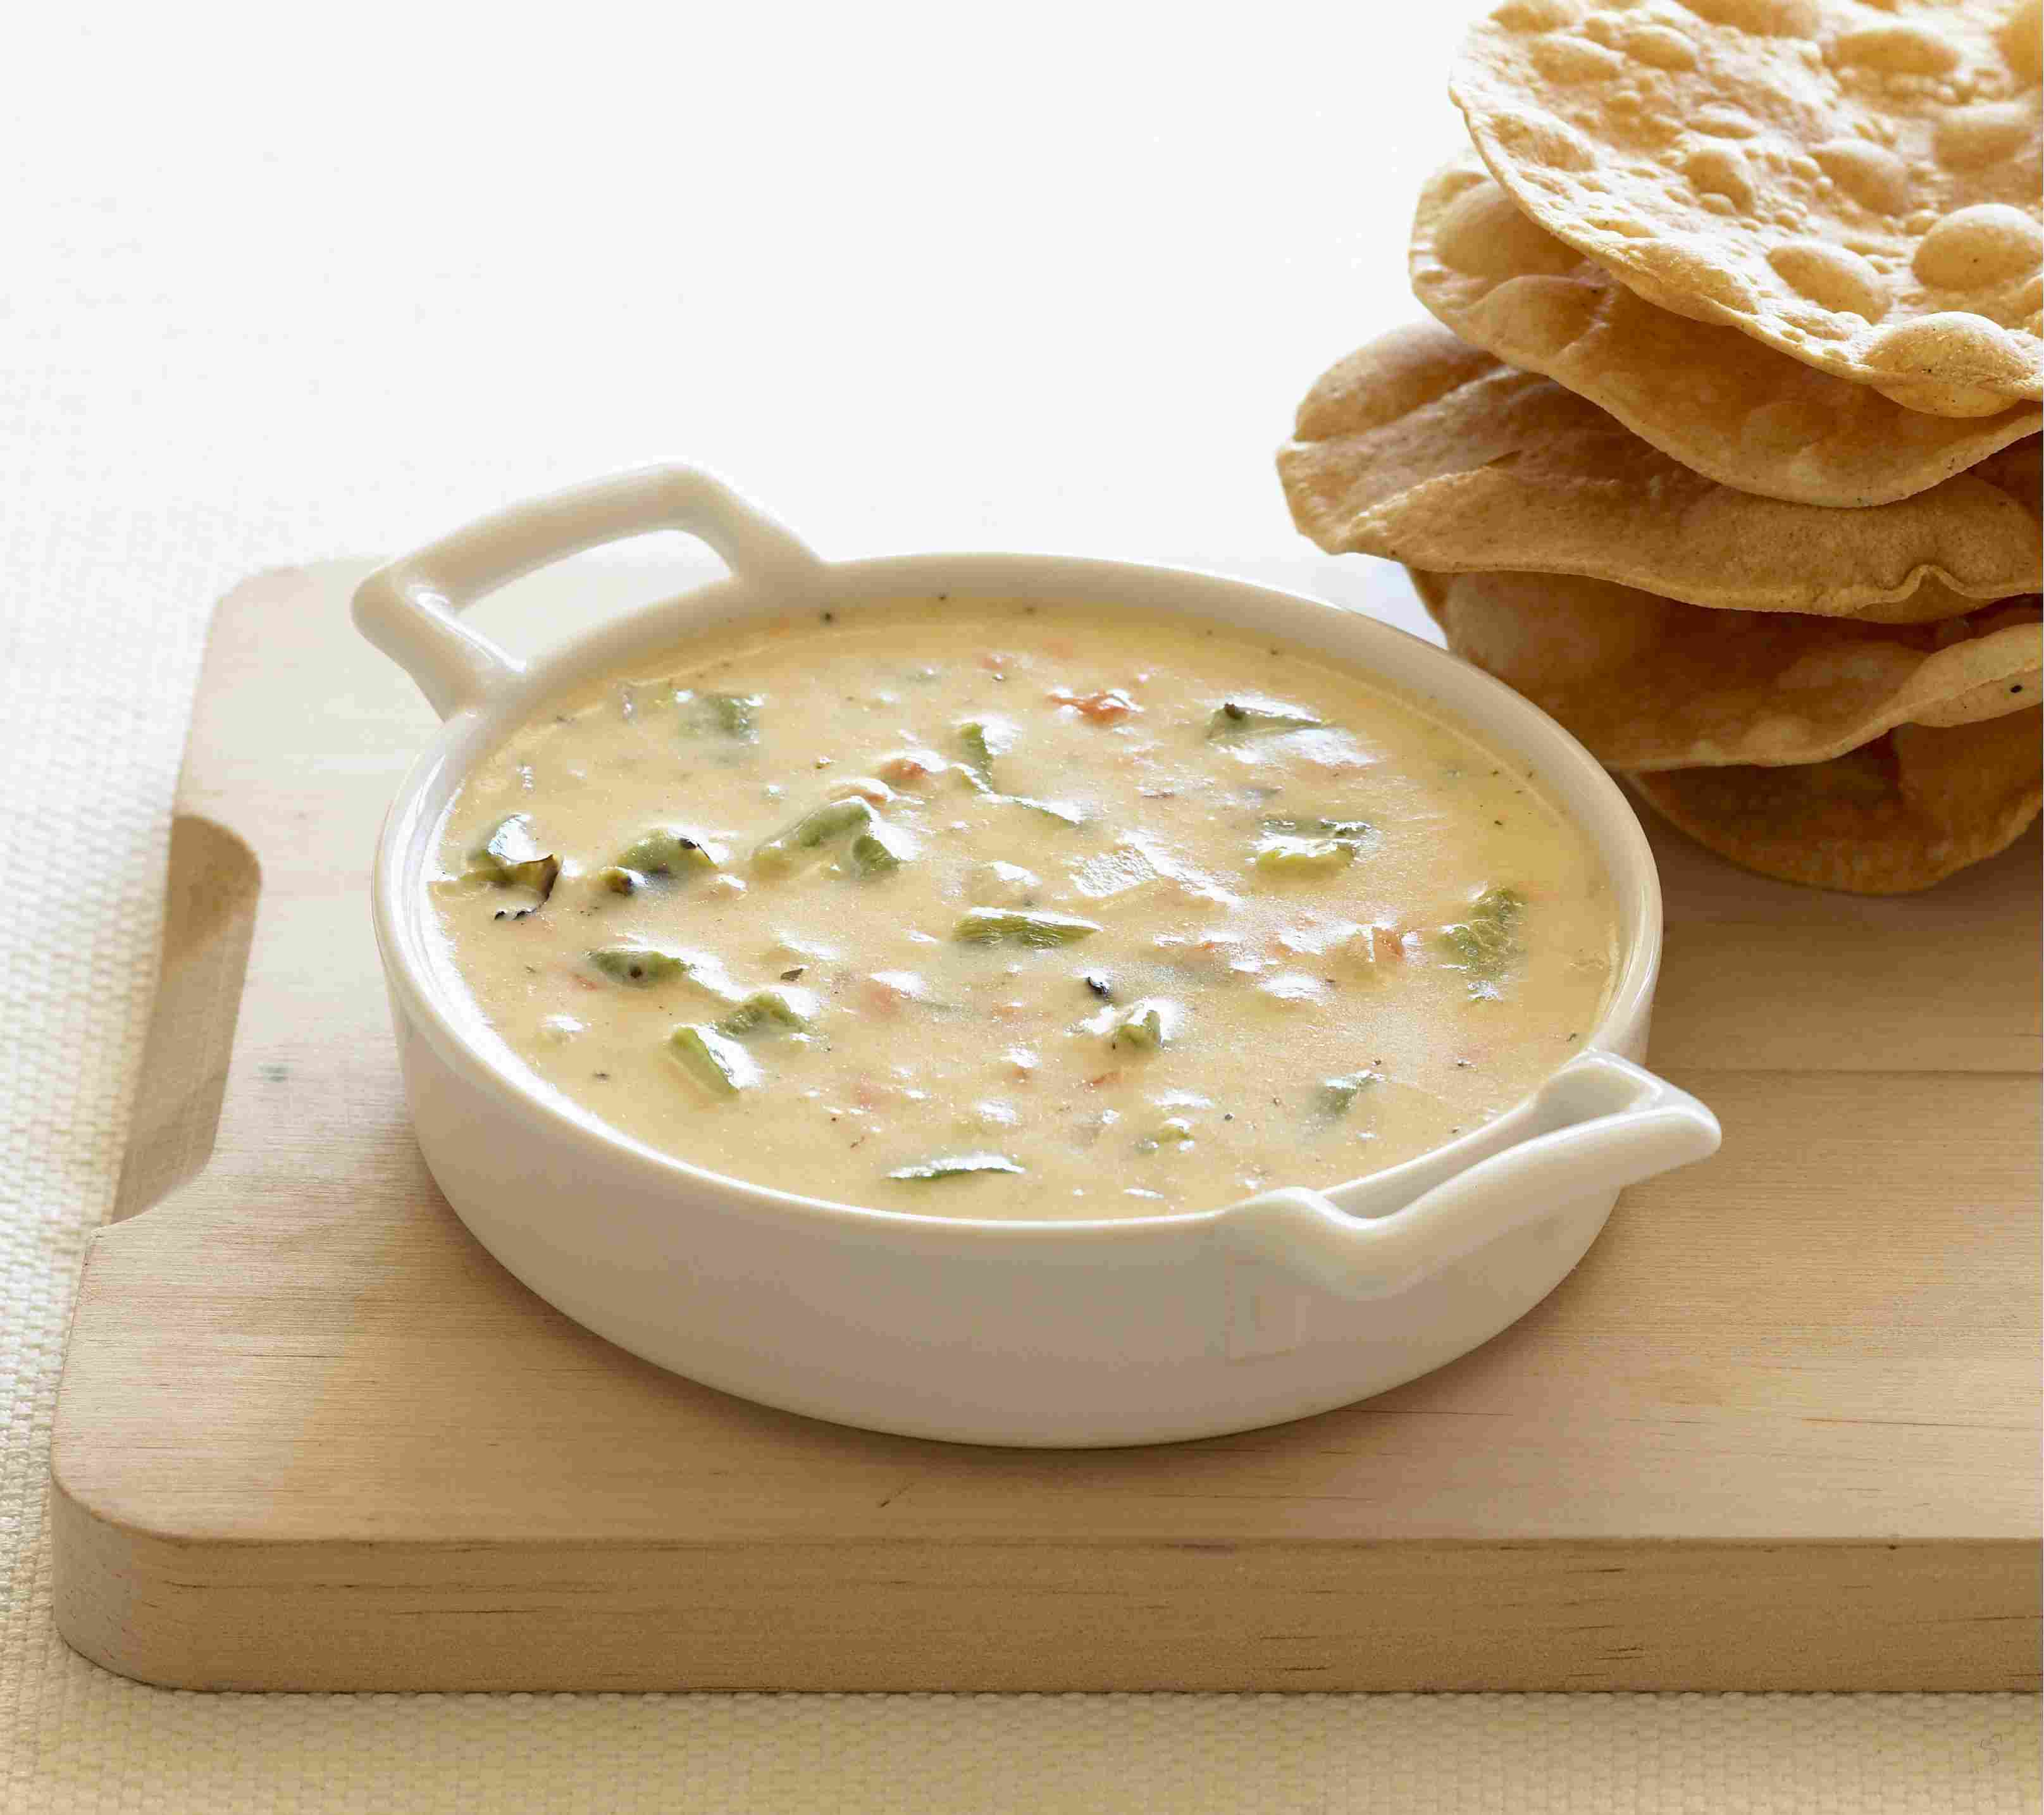 Mexican cheese and chilies dip and fried tortillas